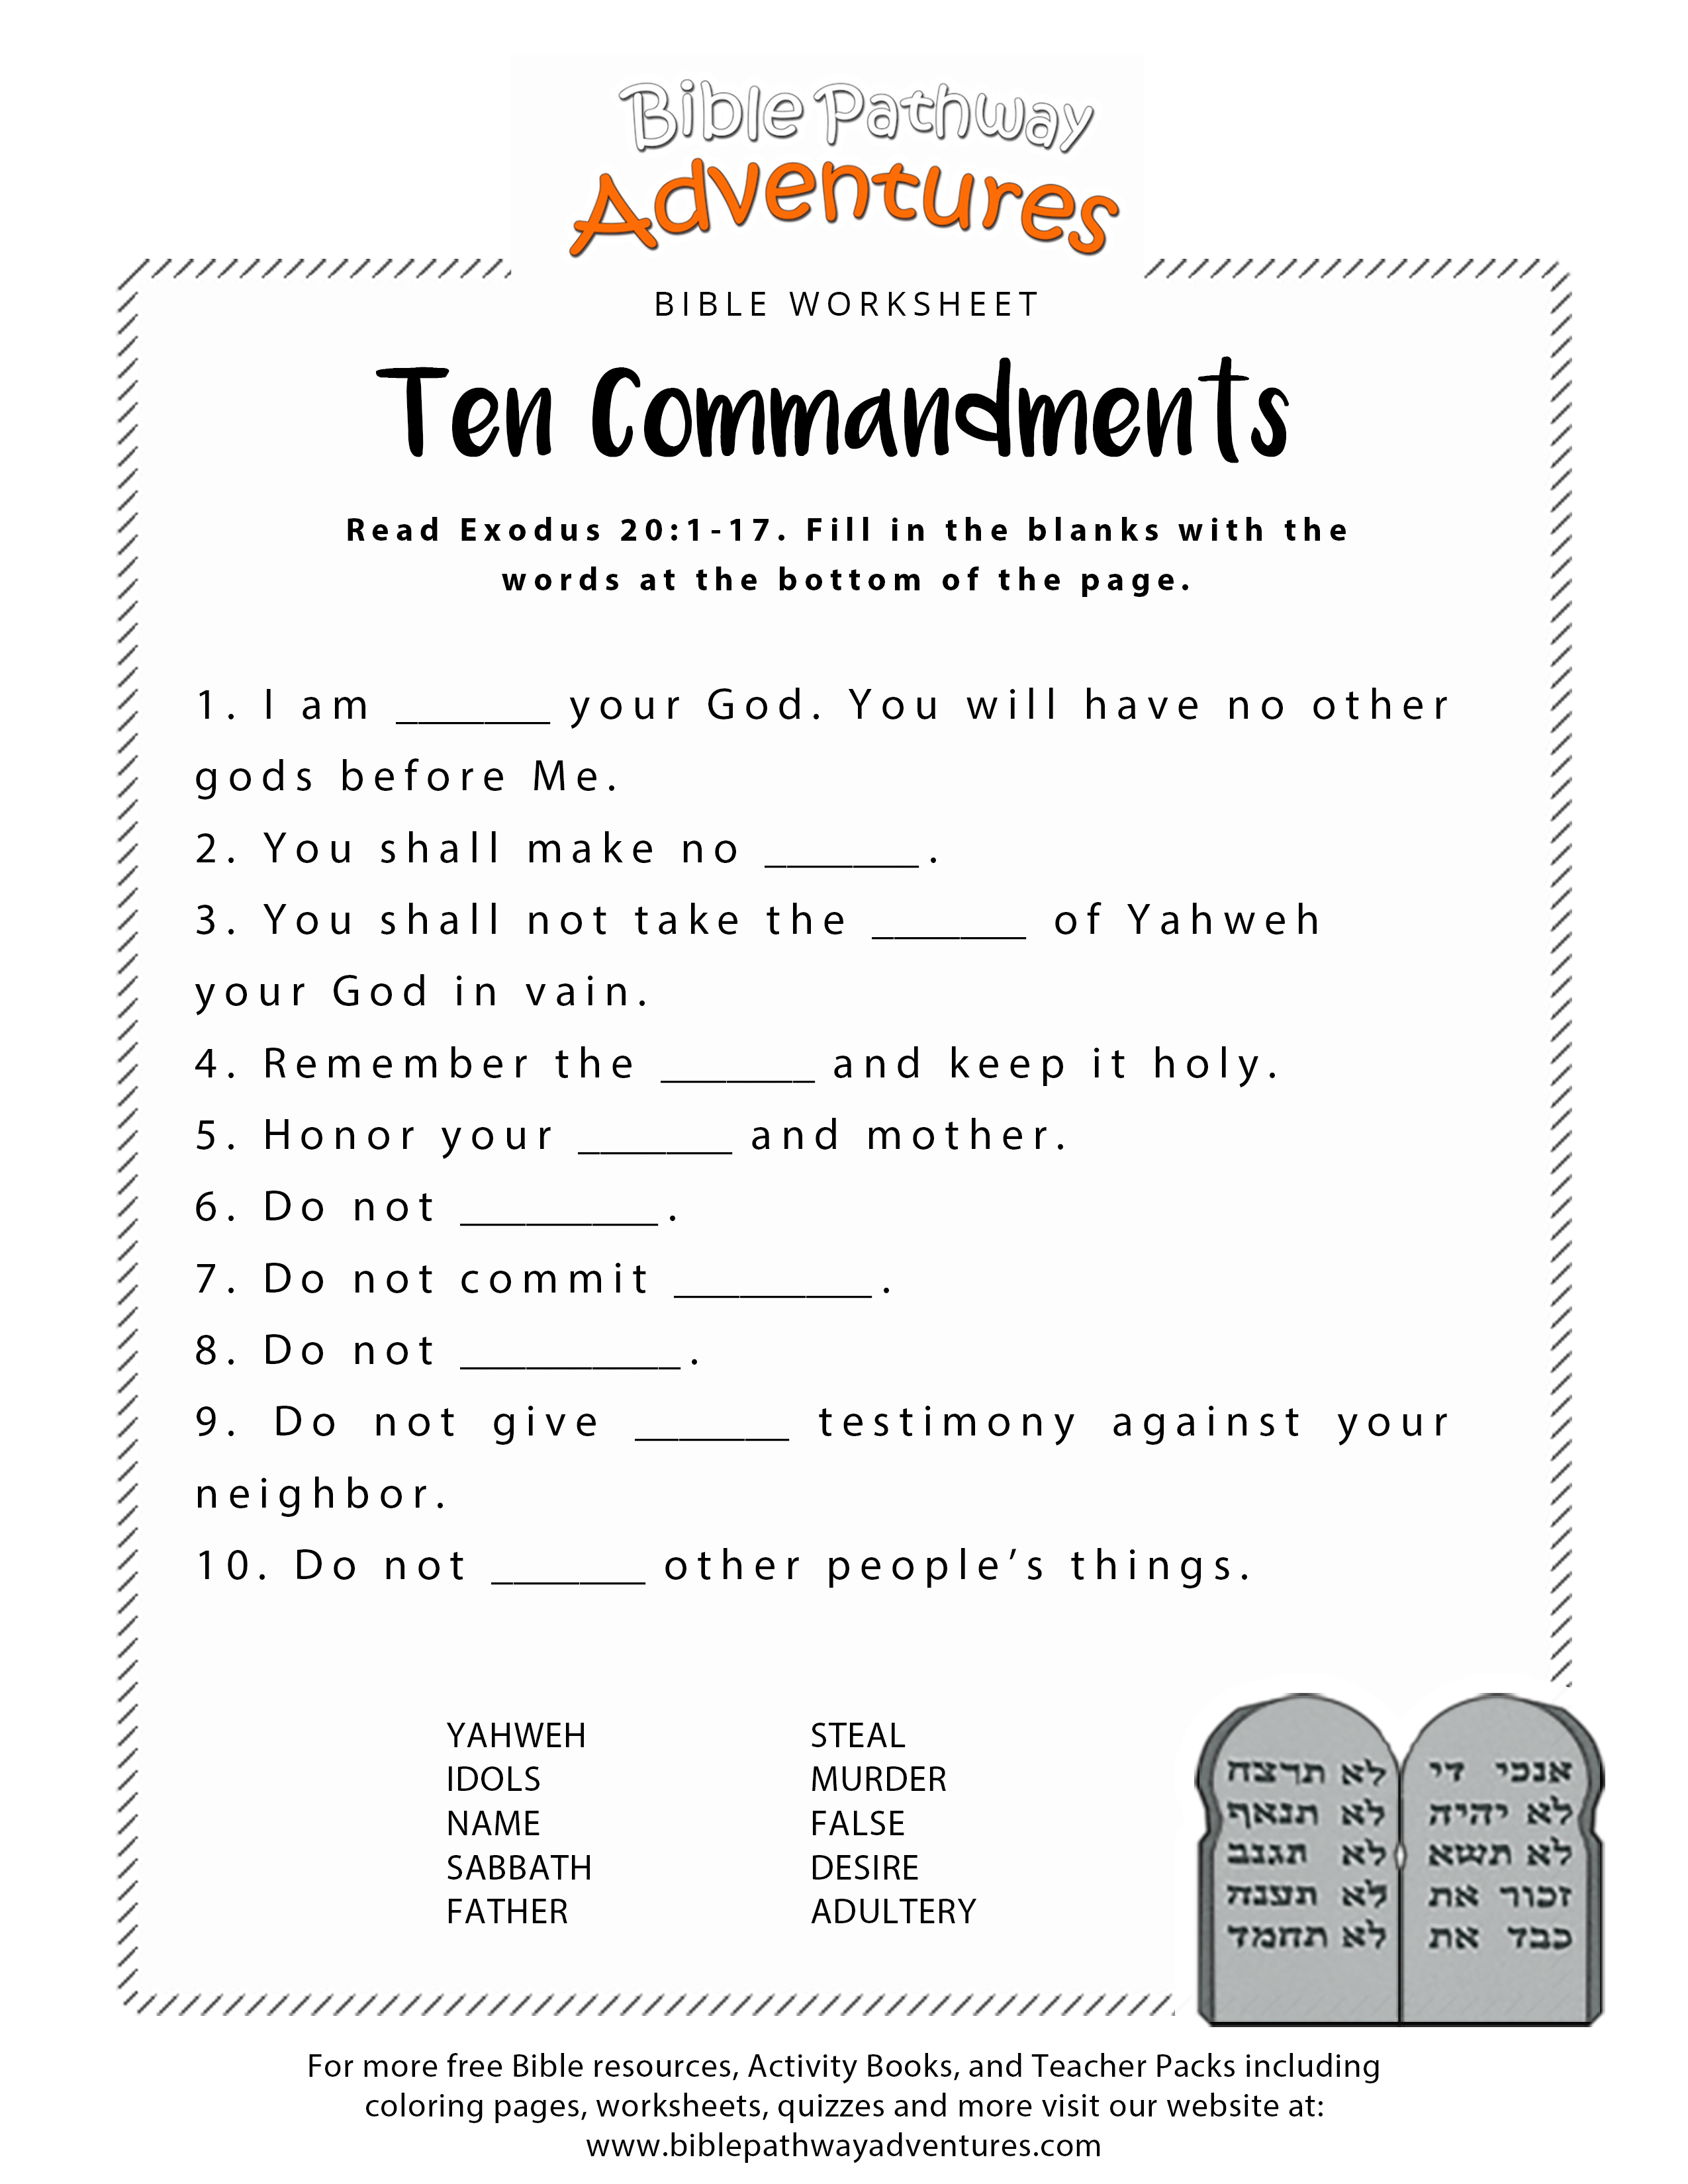 Ten Commandments Worksheet For Kids | Junior Church | Bible - Free Printable Bible Study Lessons